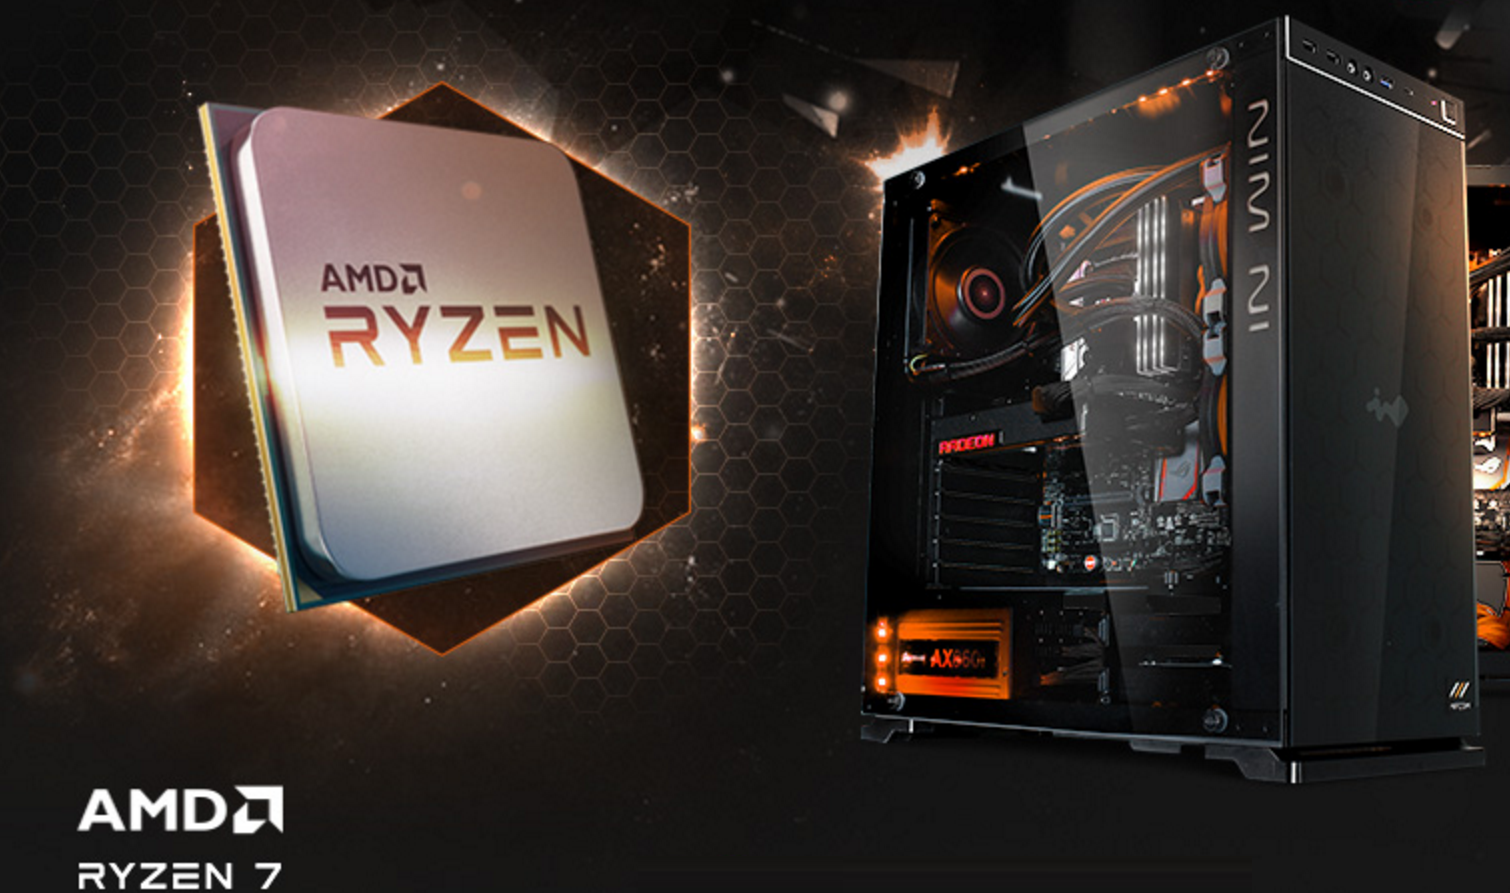 Amd Ryzen 7 1700x Vs I7 6800k Benchmarked In 13 Games